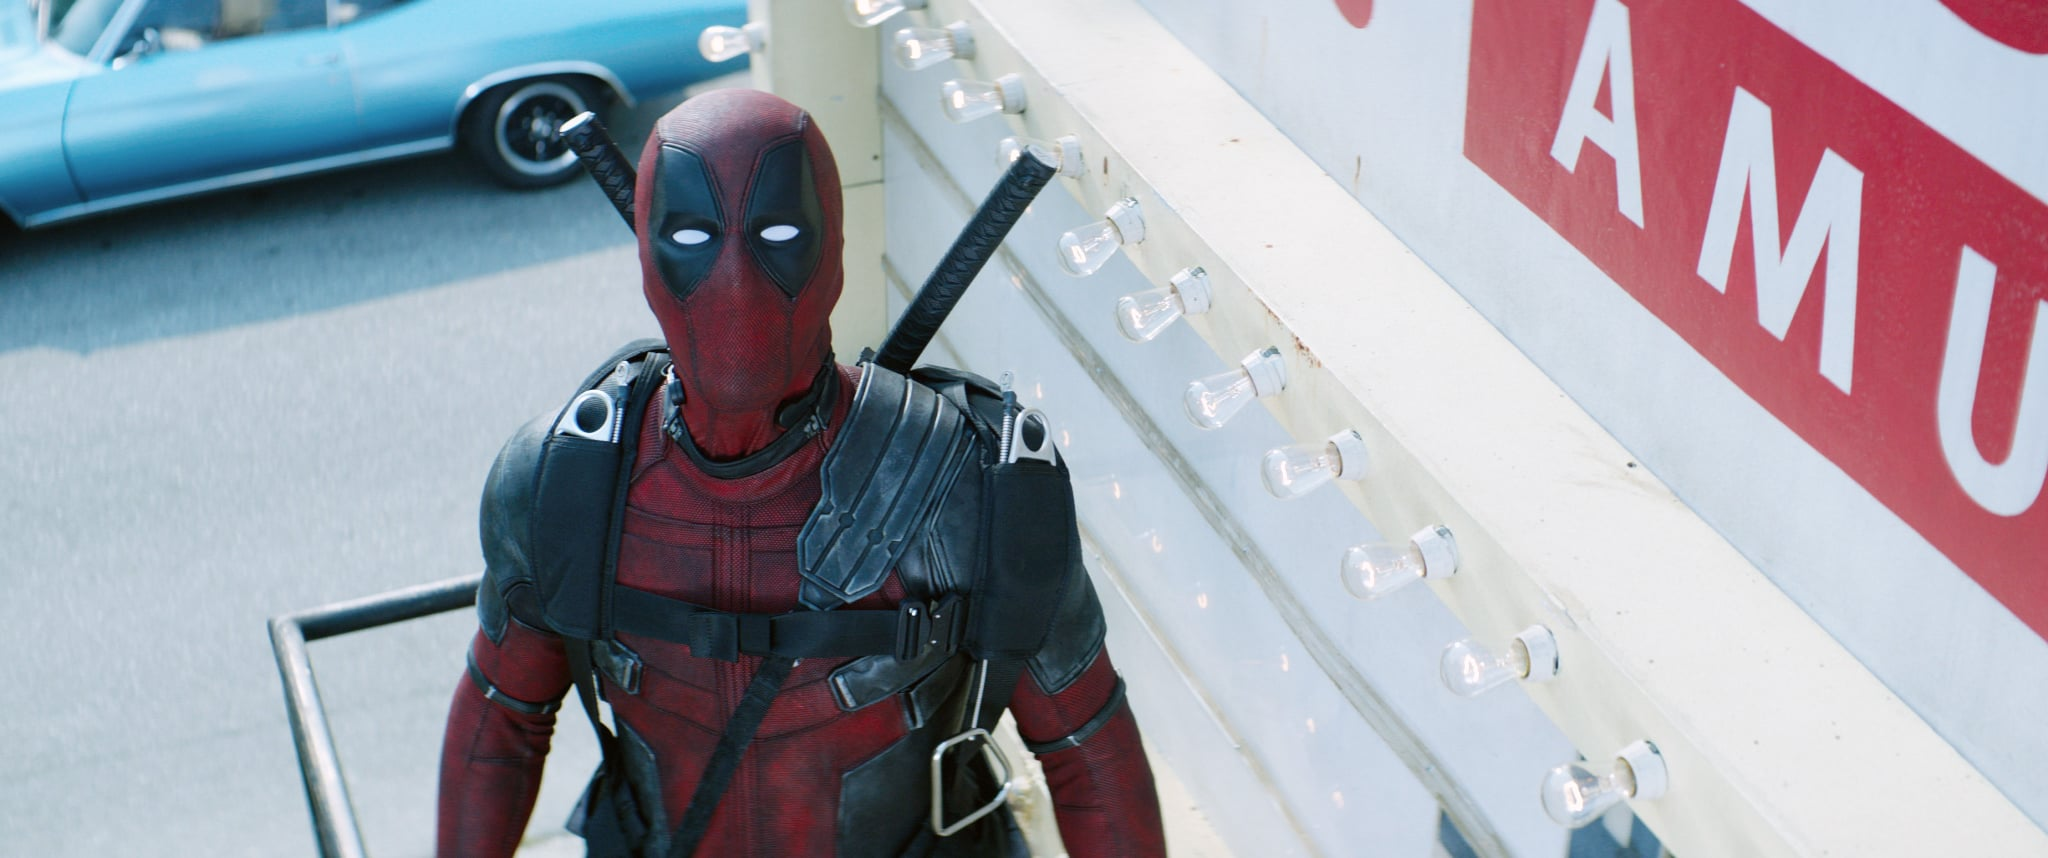 DEADPOOL 2, Ryan Reynolds as Deadpool, 2018. TM & Copyright  20th Century Fox Film Corp. All rights reserved./courtesy Everett Collection